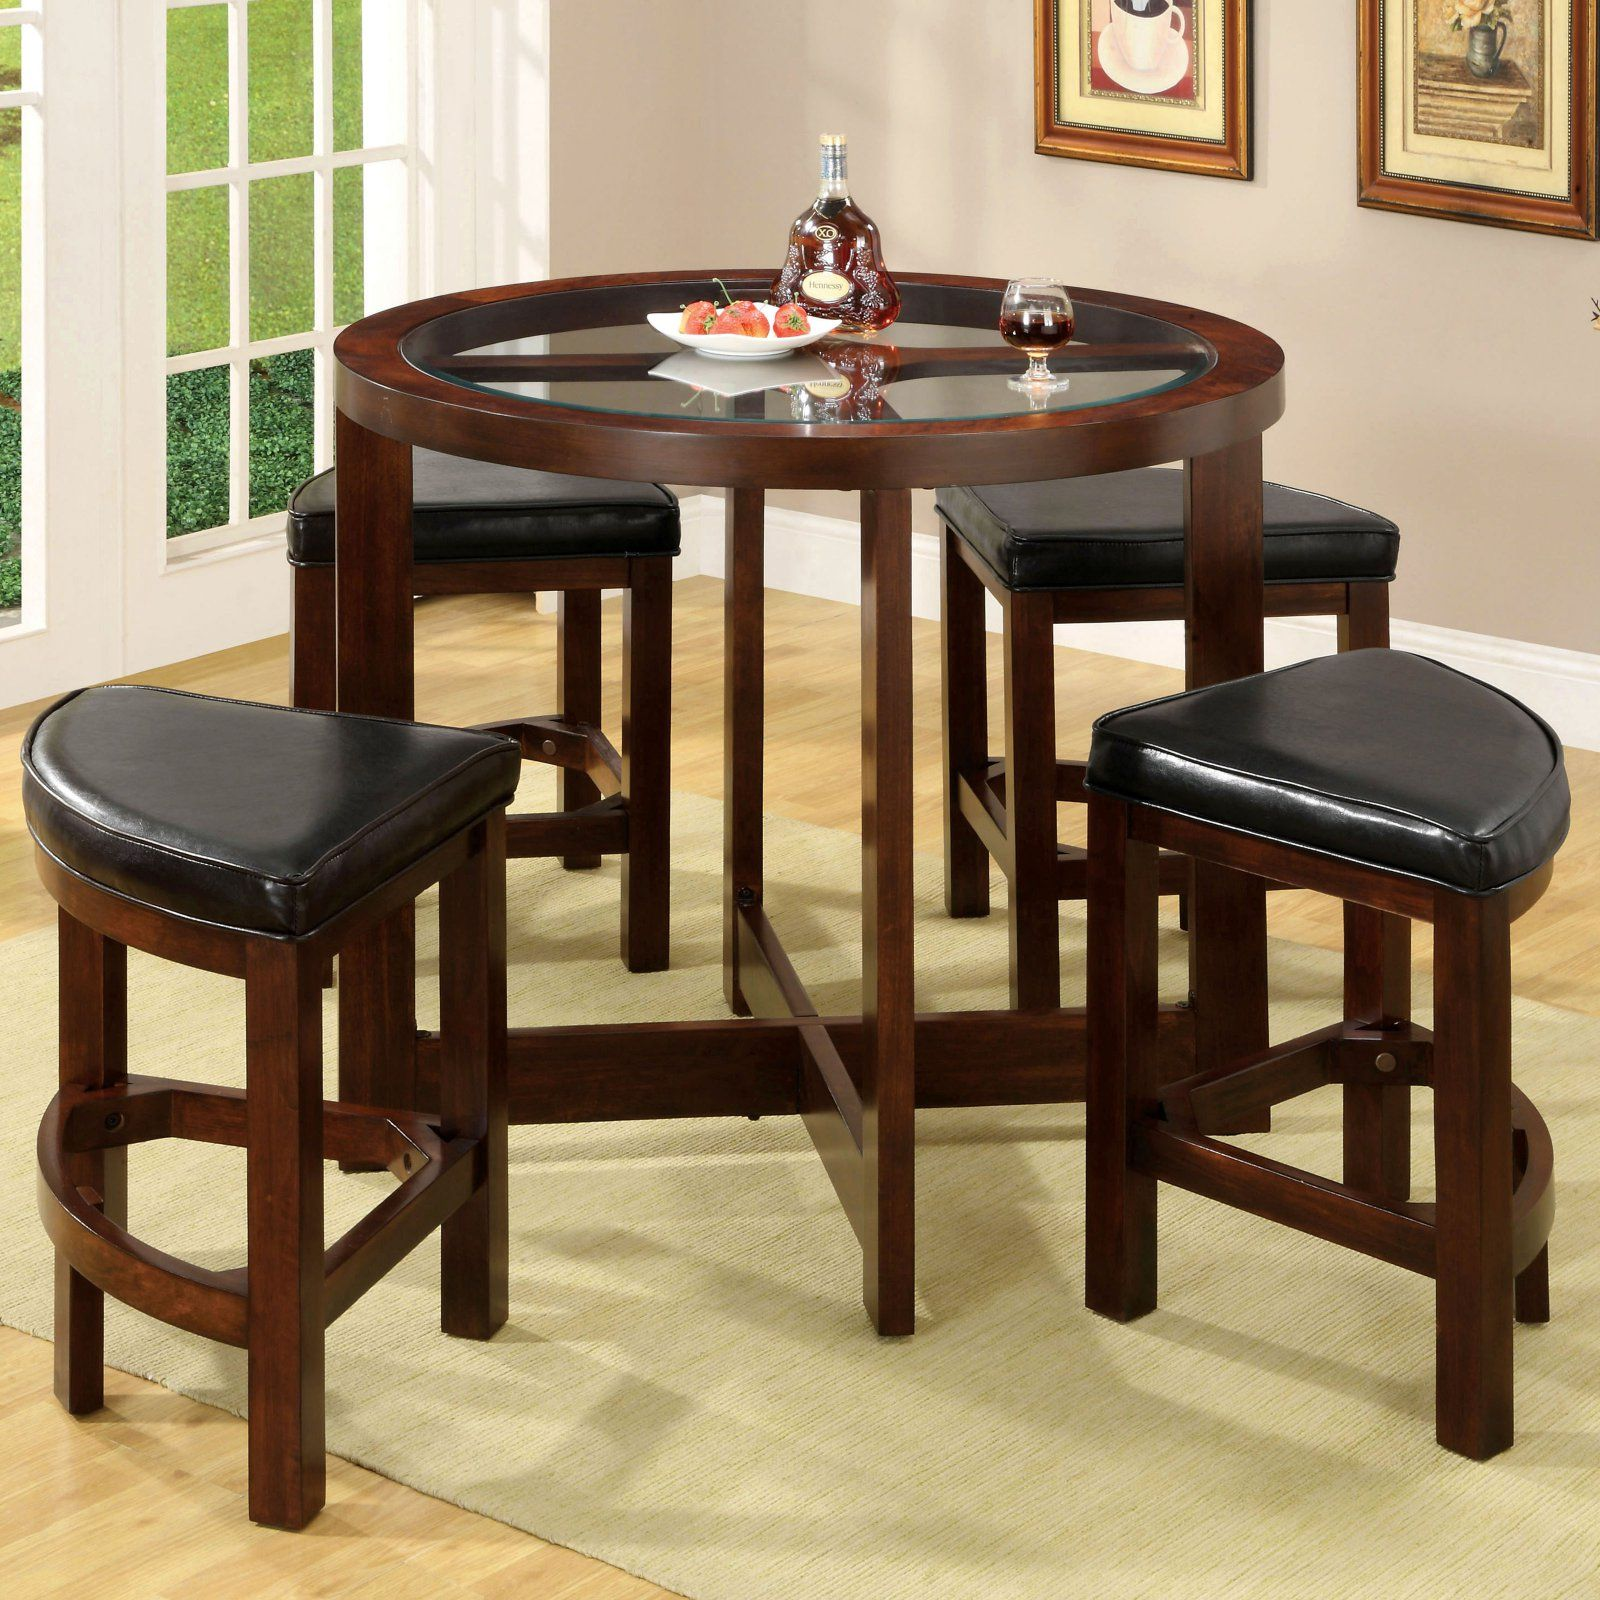 Furniture Of America Corellia 5 Piece Counter Height Table Set